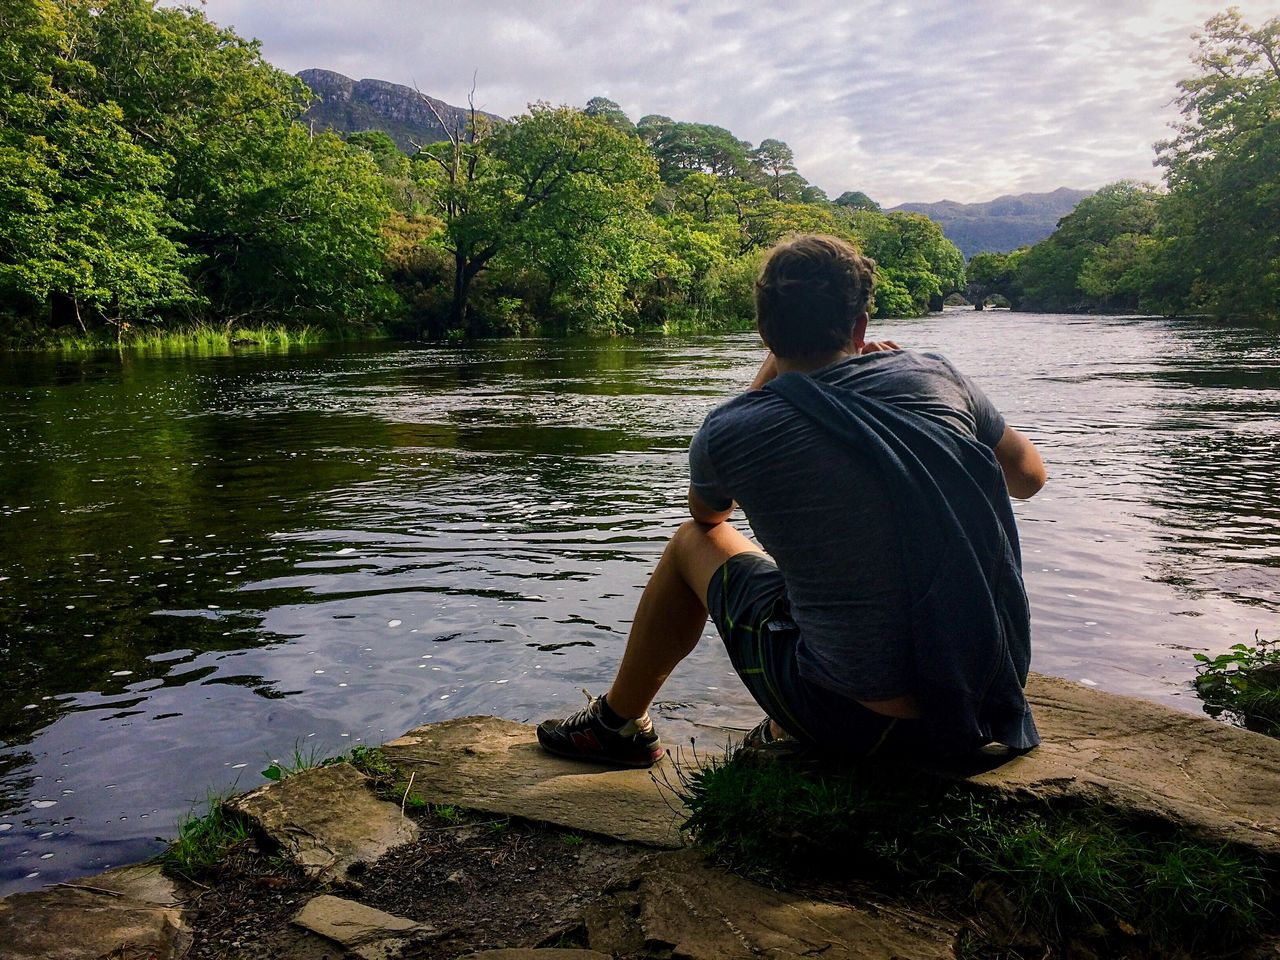 Ireland Killarney  Cill Airne Lake Rear View Sitting Water Nature Full Length Tree One Person Outdoors Stream - Flowing Water Landscape People Beauty In Nature Day Sky What Who Where